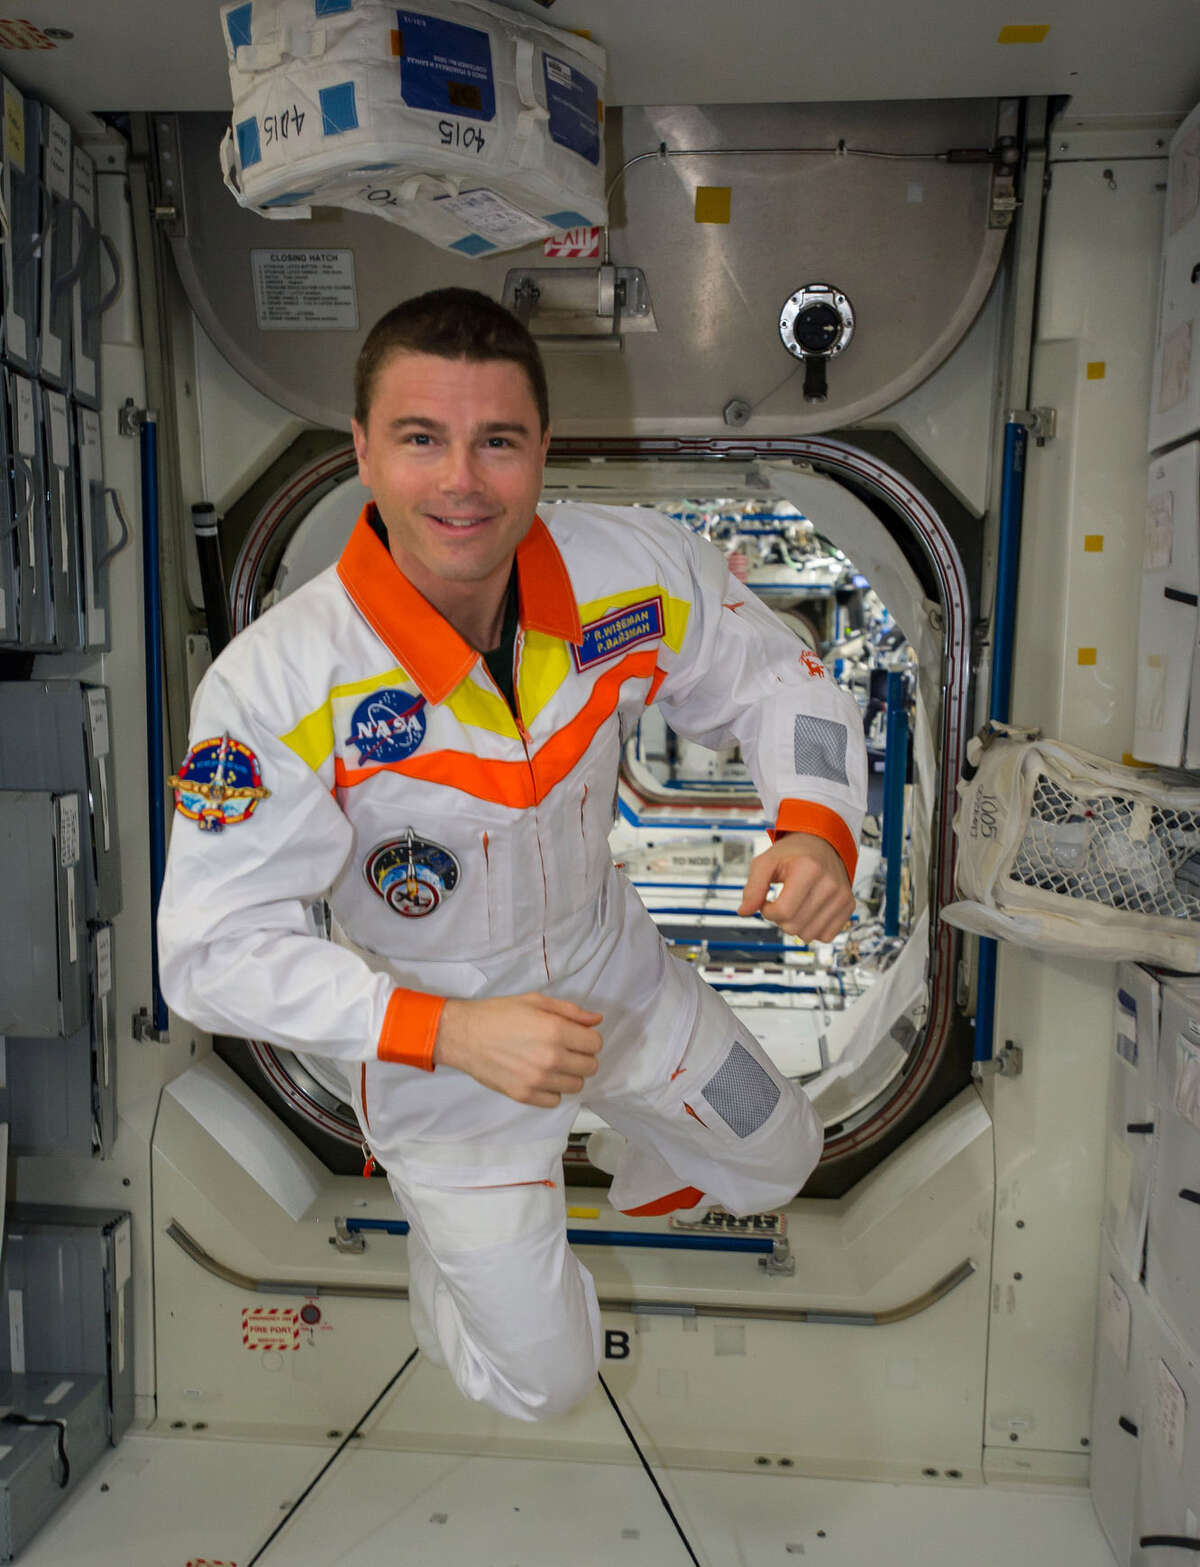 NASA astronaut Reid Wiseman is pictured while floating freely in the Unity node of the International Space Station. (NASA)